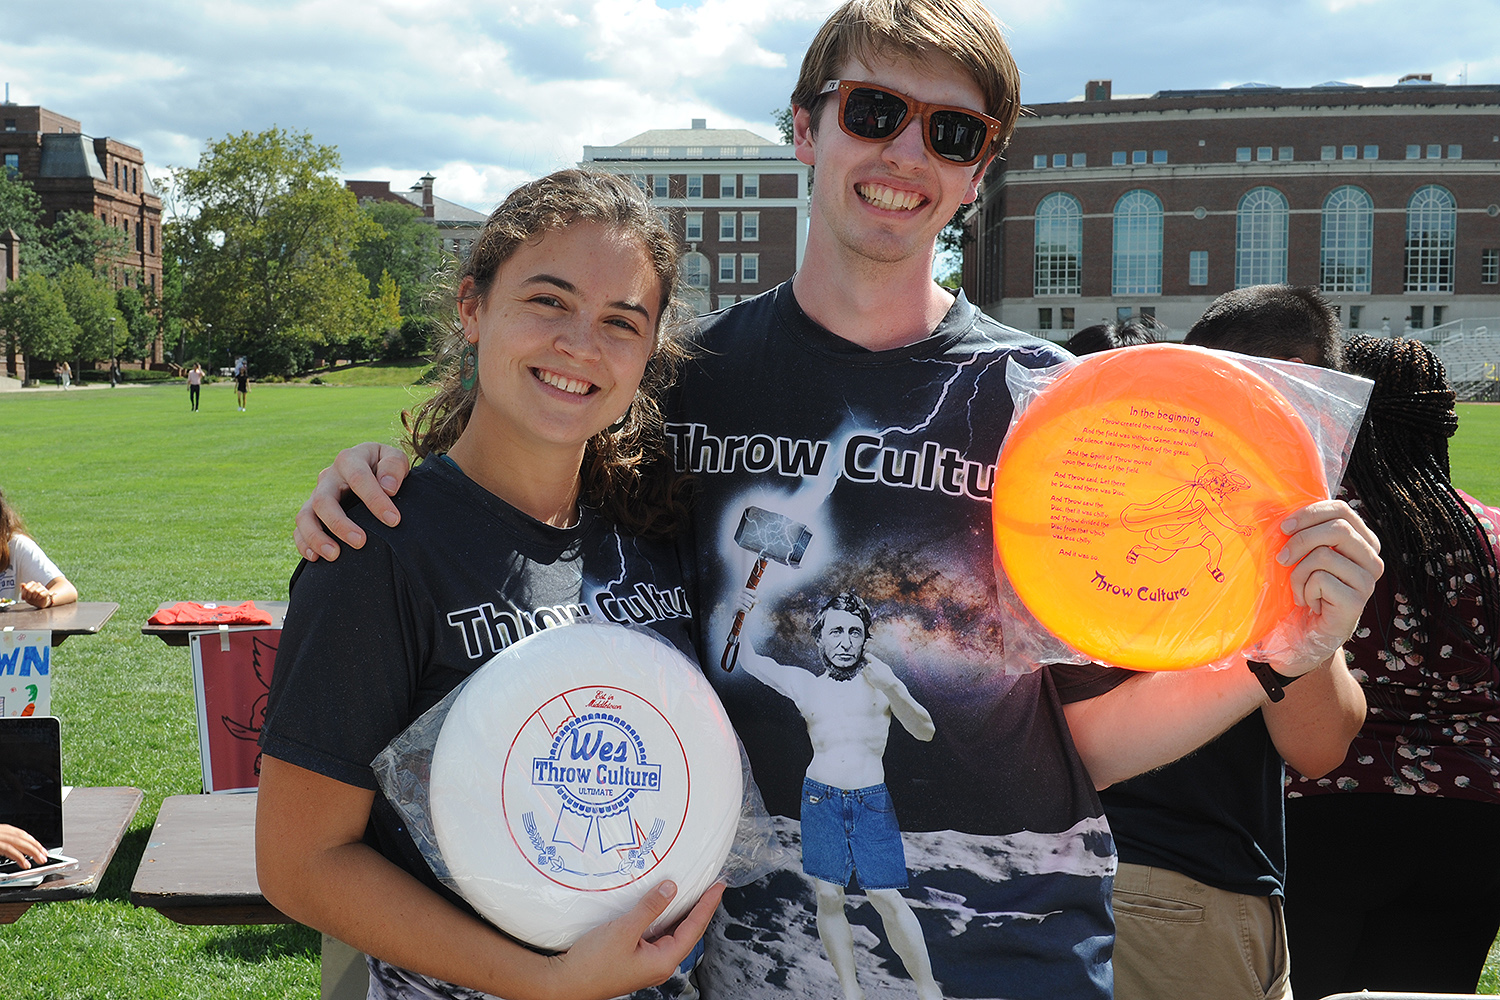 Throw Culture is Wesleyan's mixed ultimate frisbee team. The group has regular practices to prepare for tournaments throughout the year. The team is an open space for everyone to come play and learn ultimate.